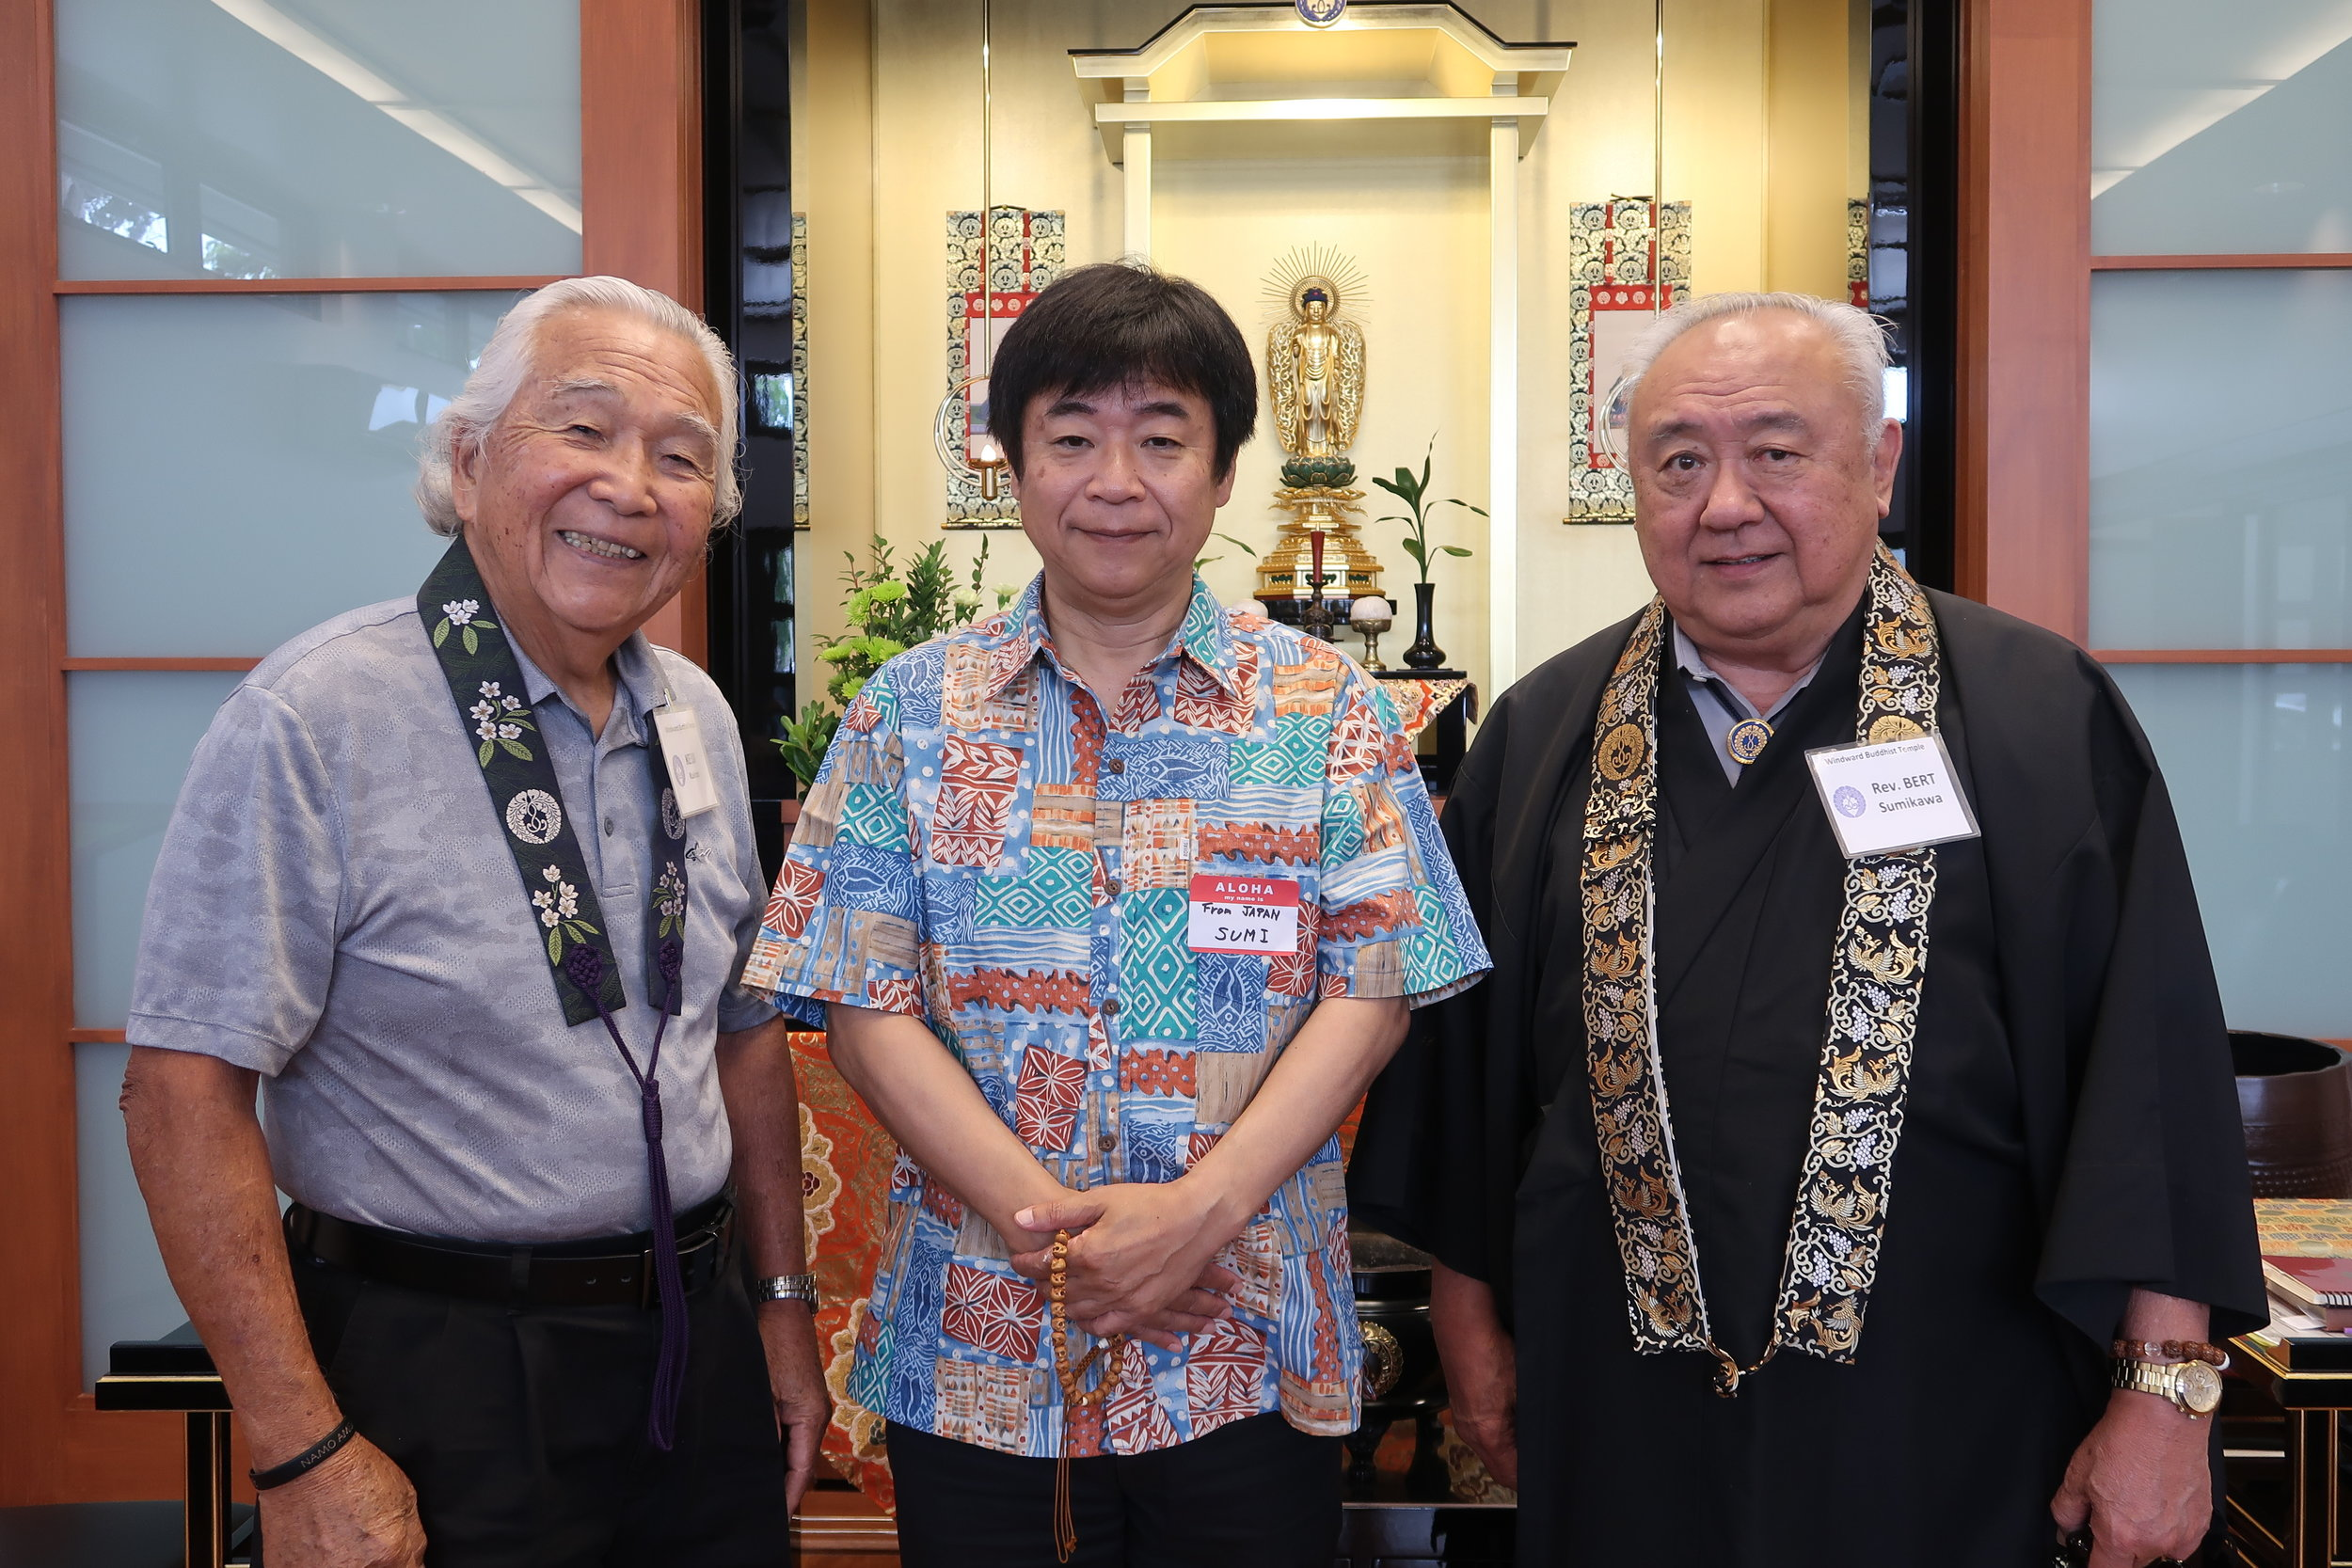 Former KHM minister Rev. Sumi visited us today. Rev. Sumi was our resident minister from March 1985 to March 1987.